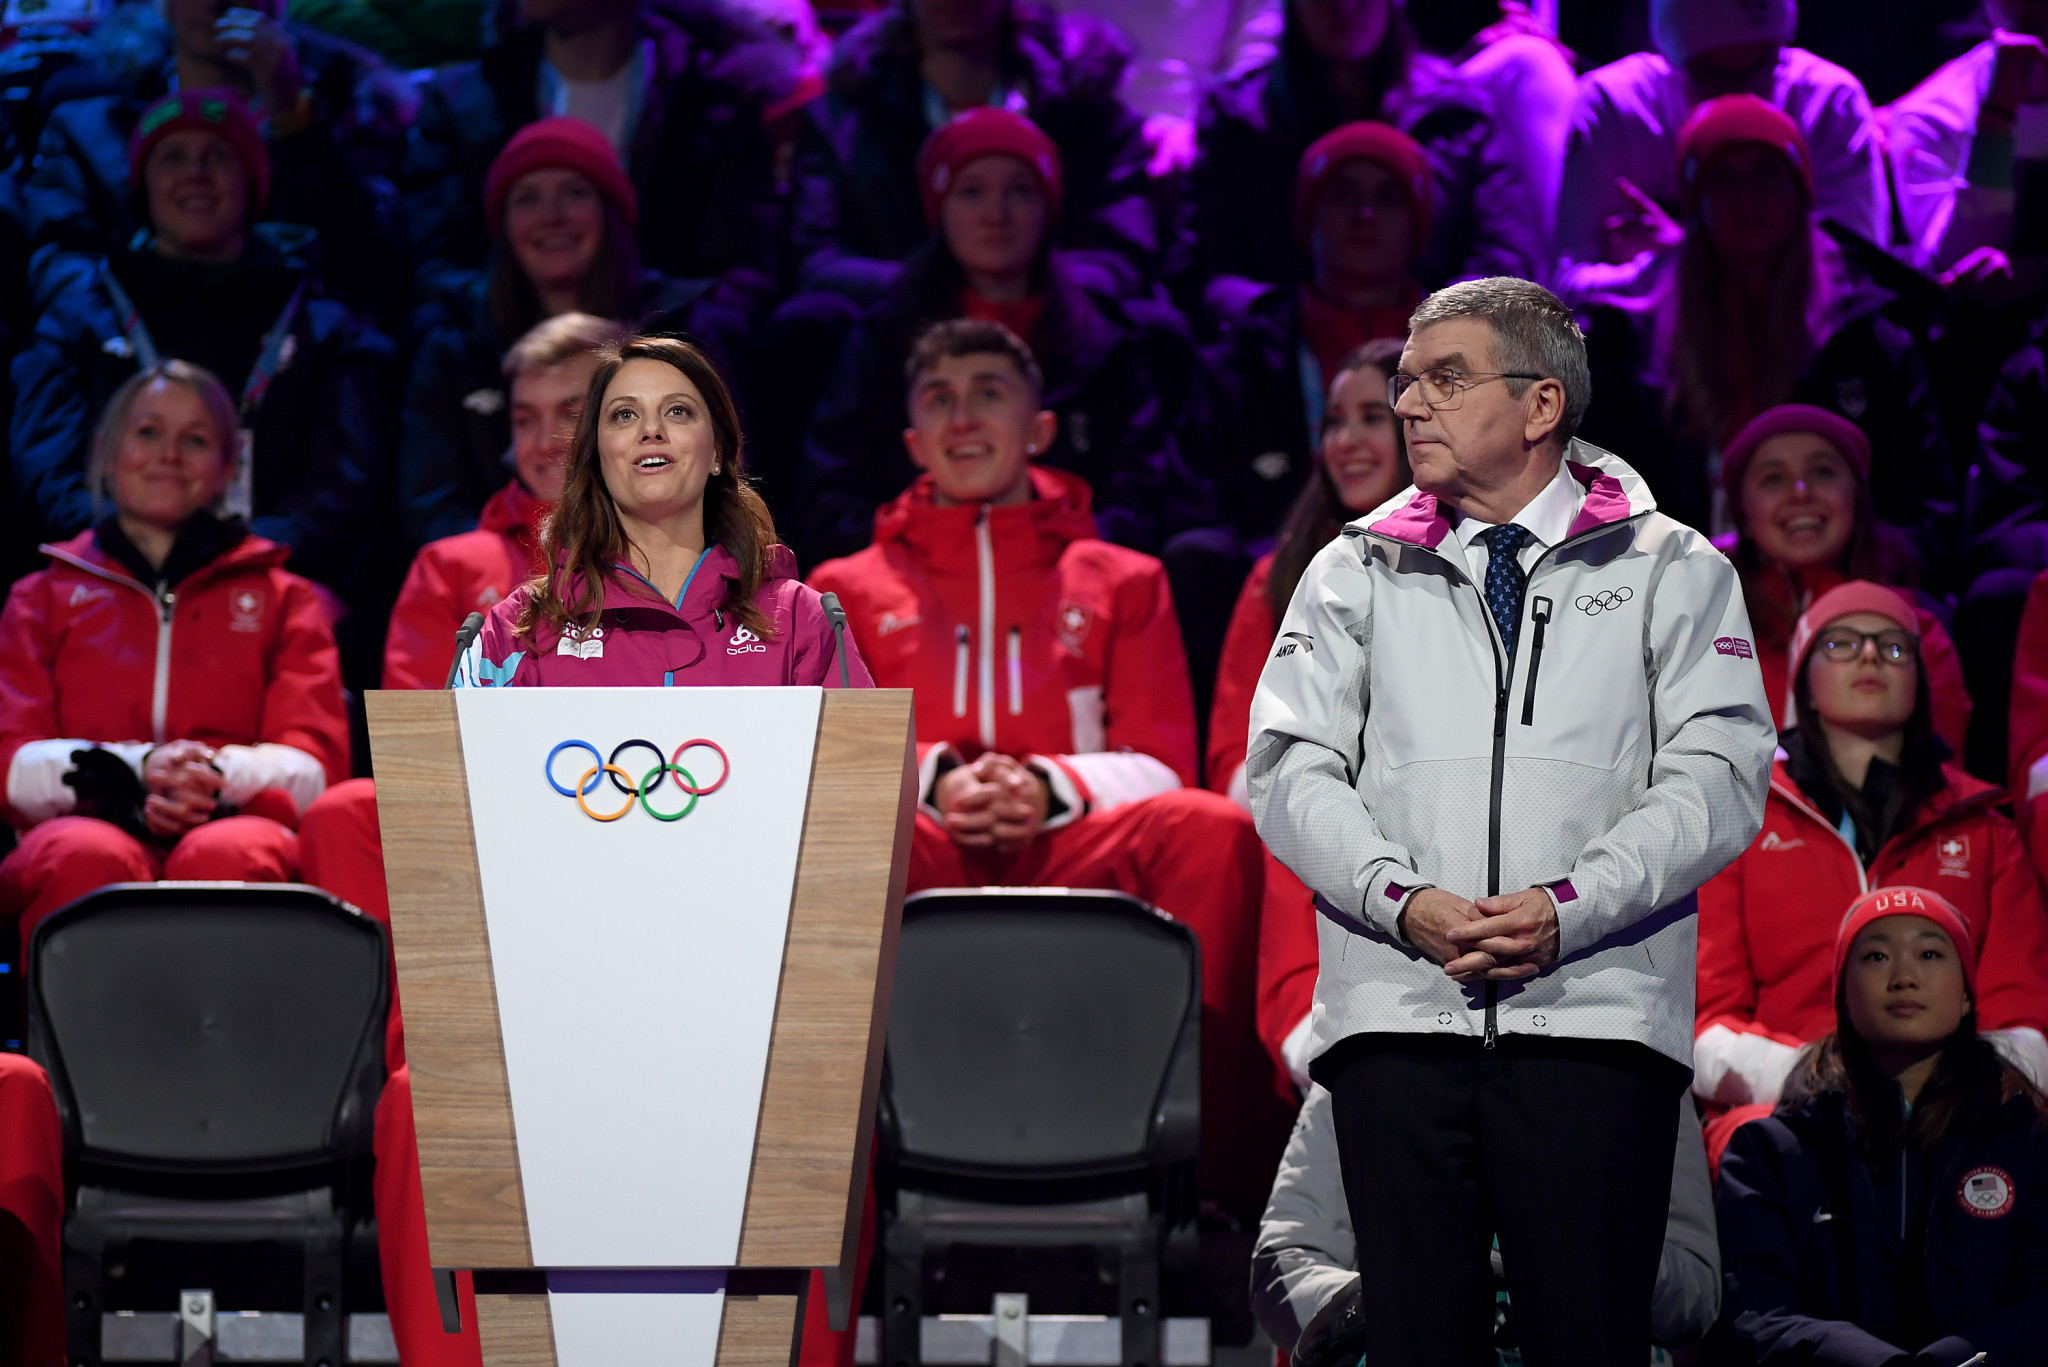 Lausanne 2020 President Virginie Faivre welcomed athletes competing at the Games ©Getty Images